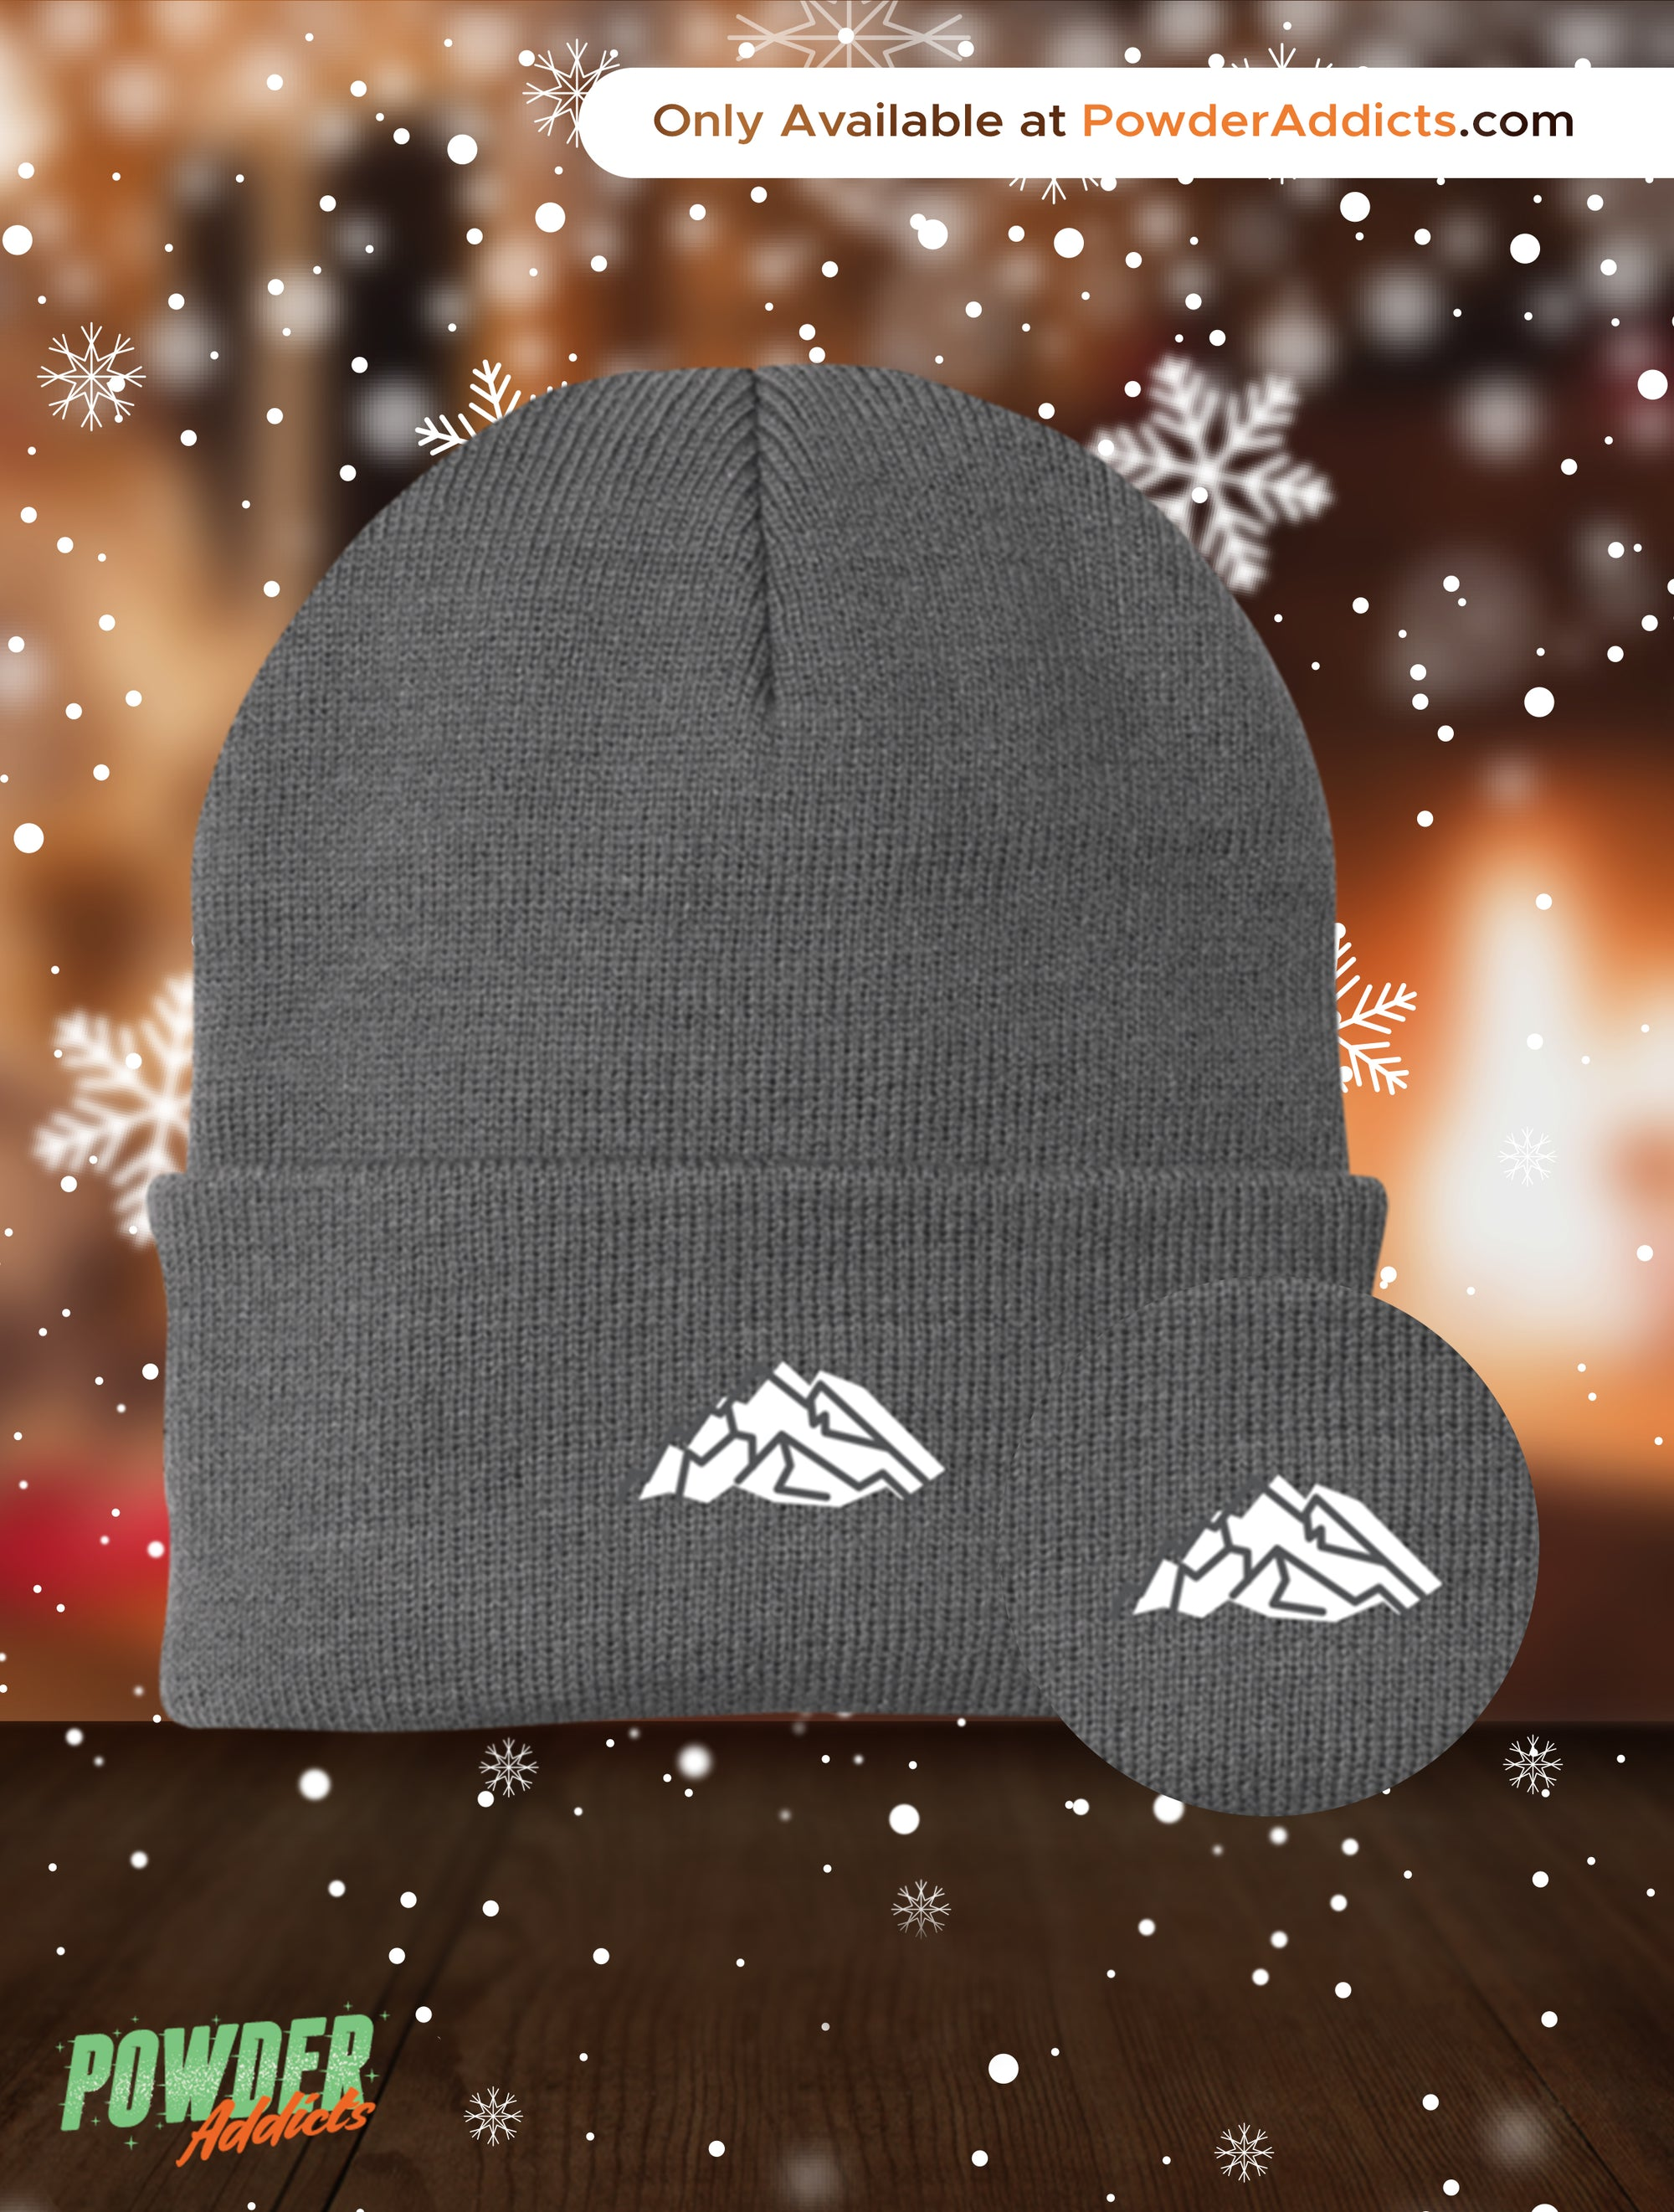 Mountain Embroidery Knit Cap - Powderaddicts